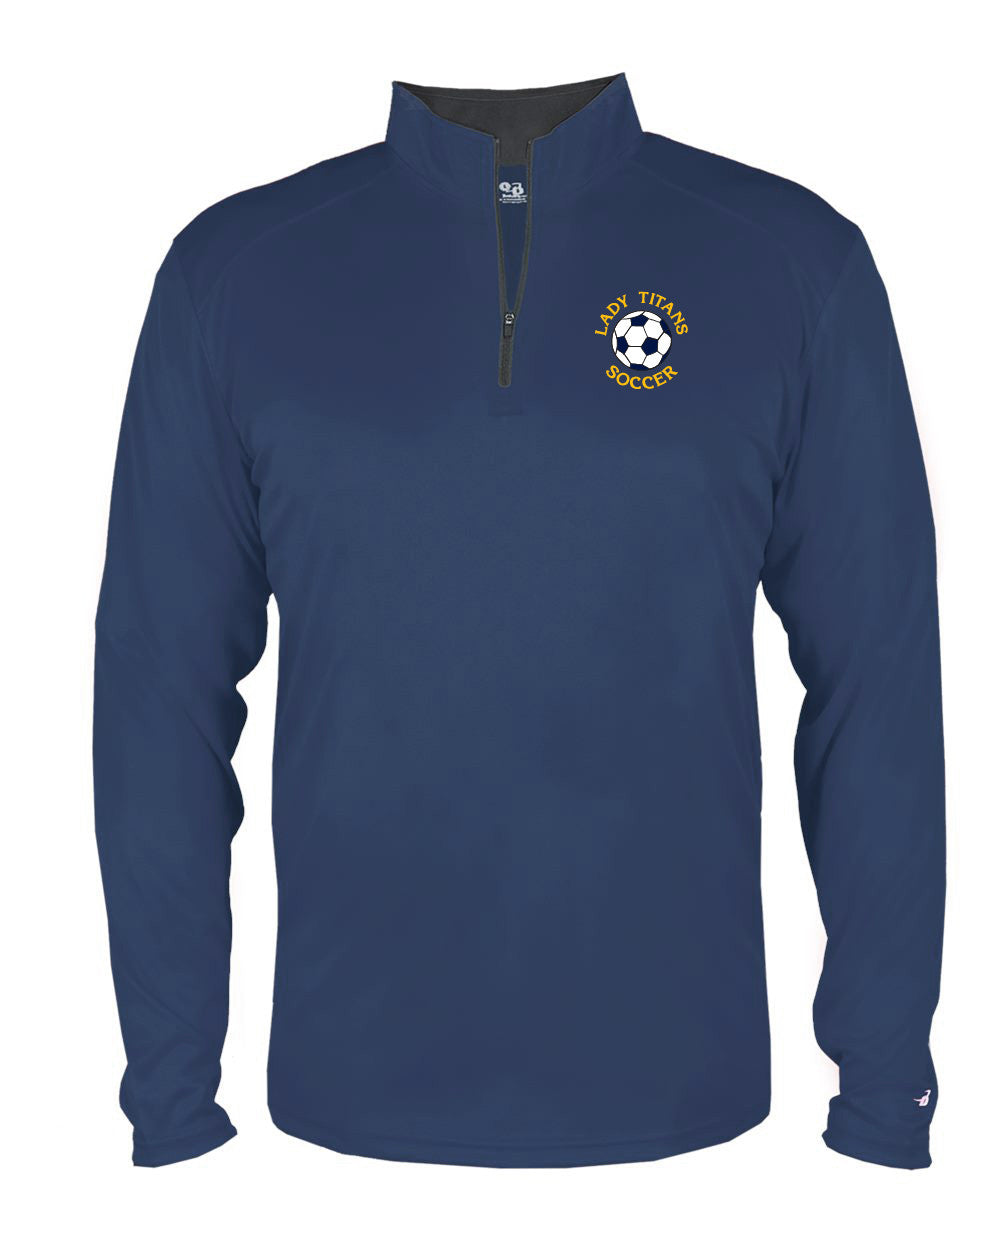 Youth Lady Titans Soccer B-Core 1/4 Zip - Navy